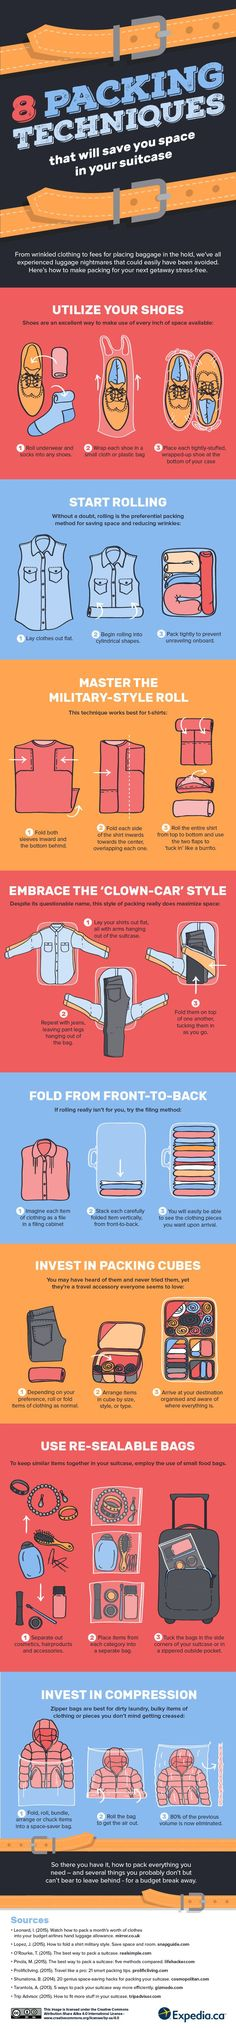 DIY Ways To Make Traveling Suck Less 8 Suitcase Hacks For Frequent Travellers [Infographic] | Lifehacker Australia